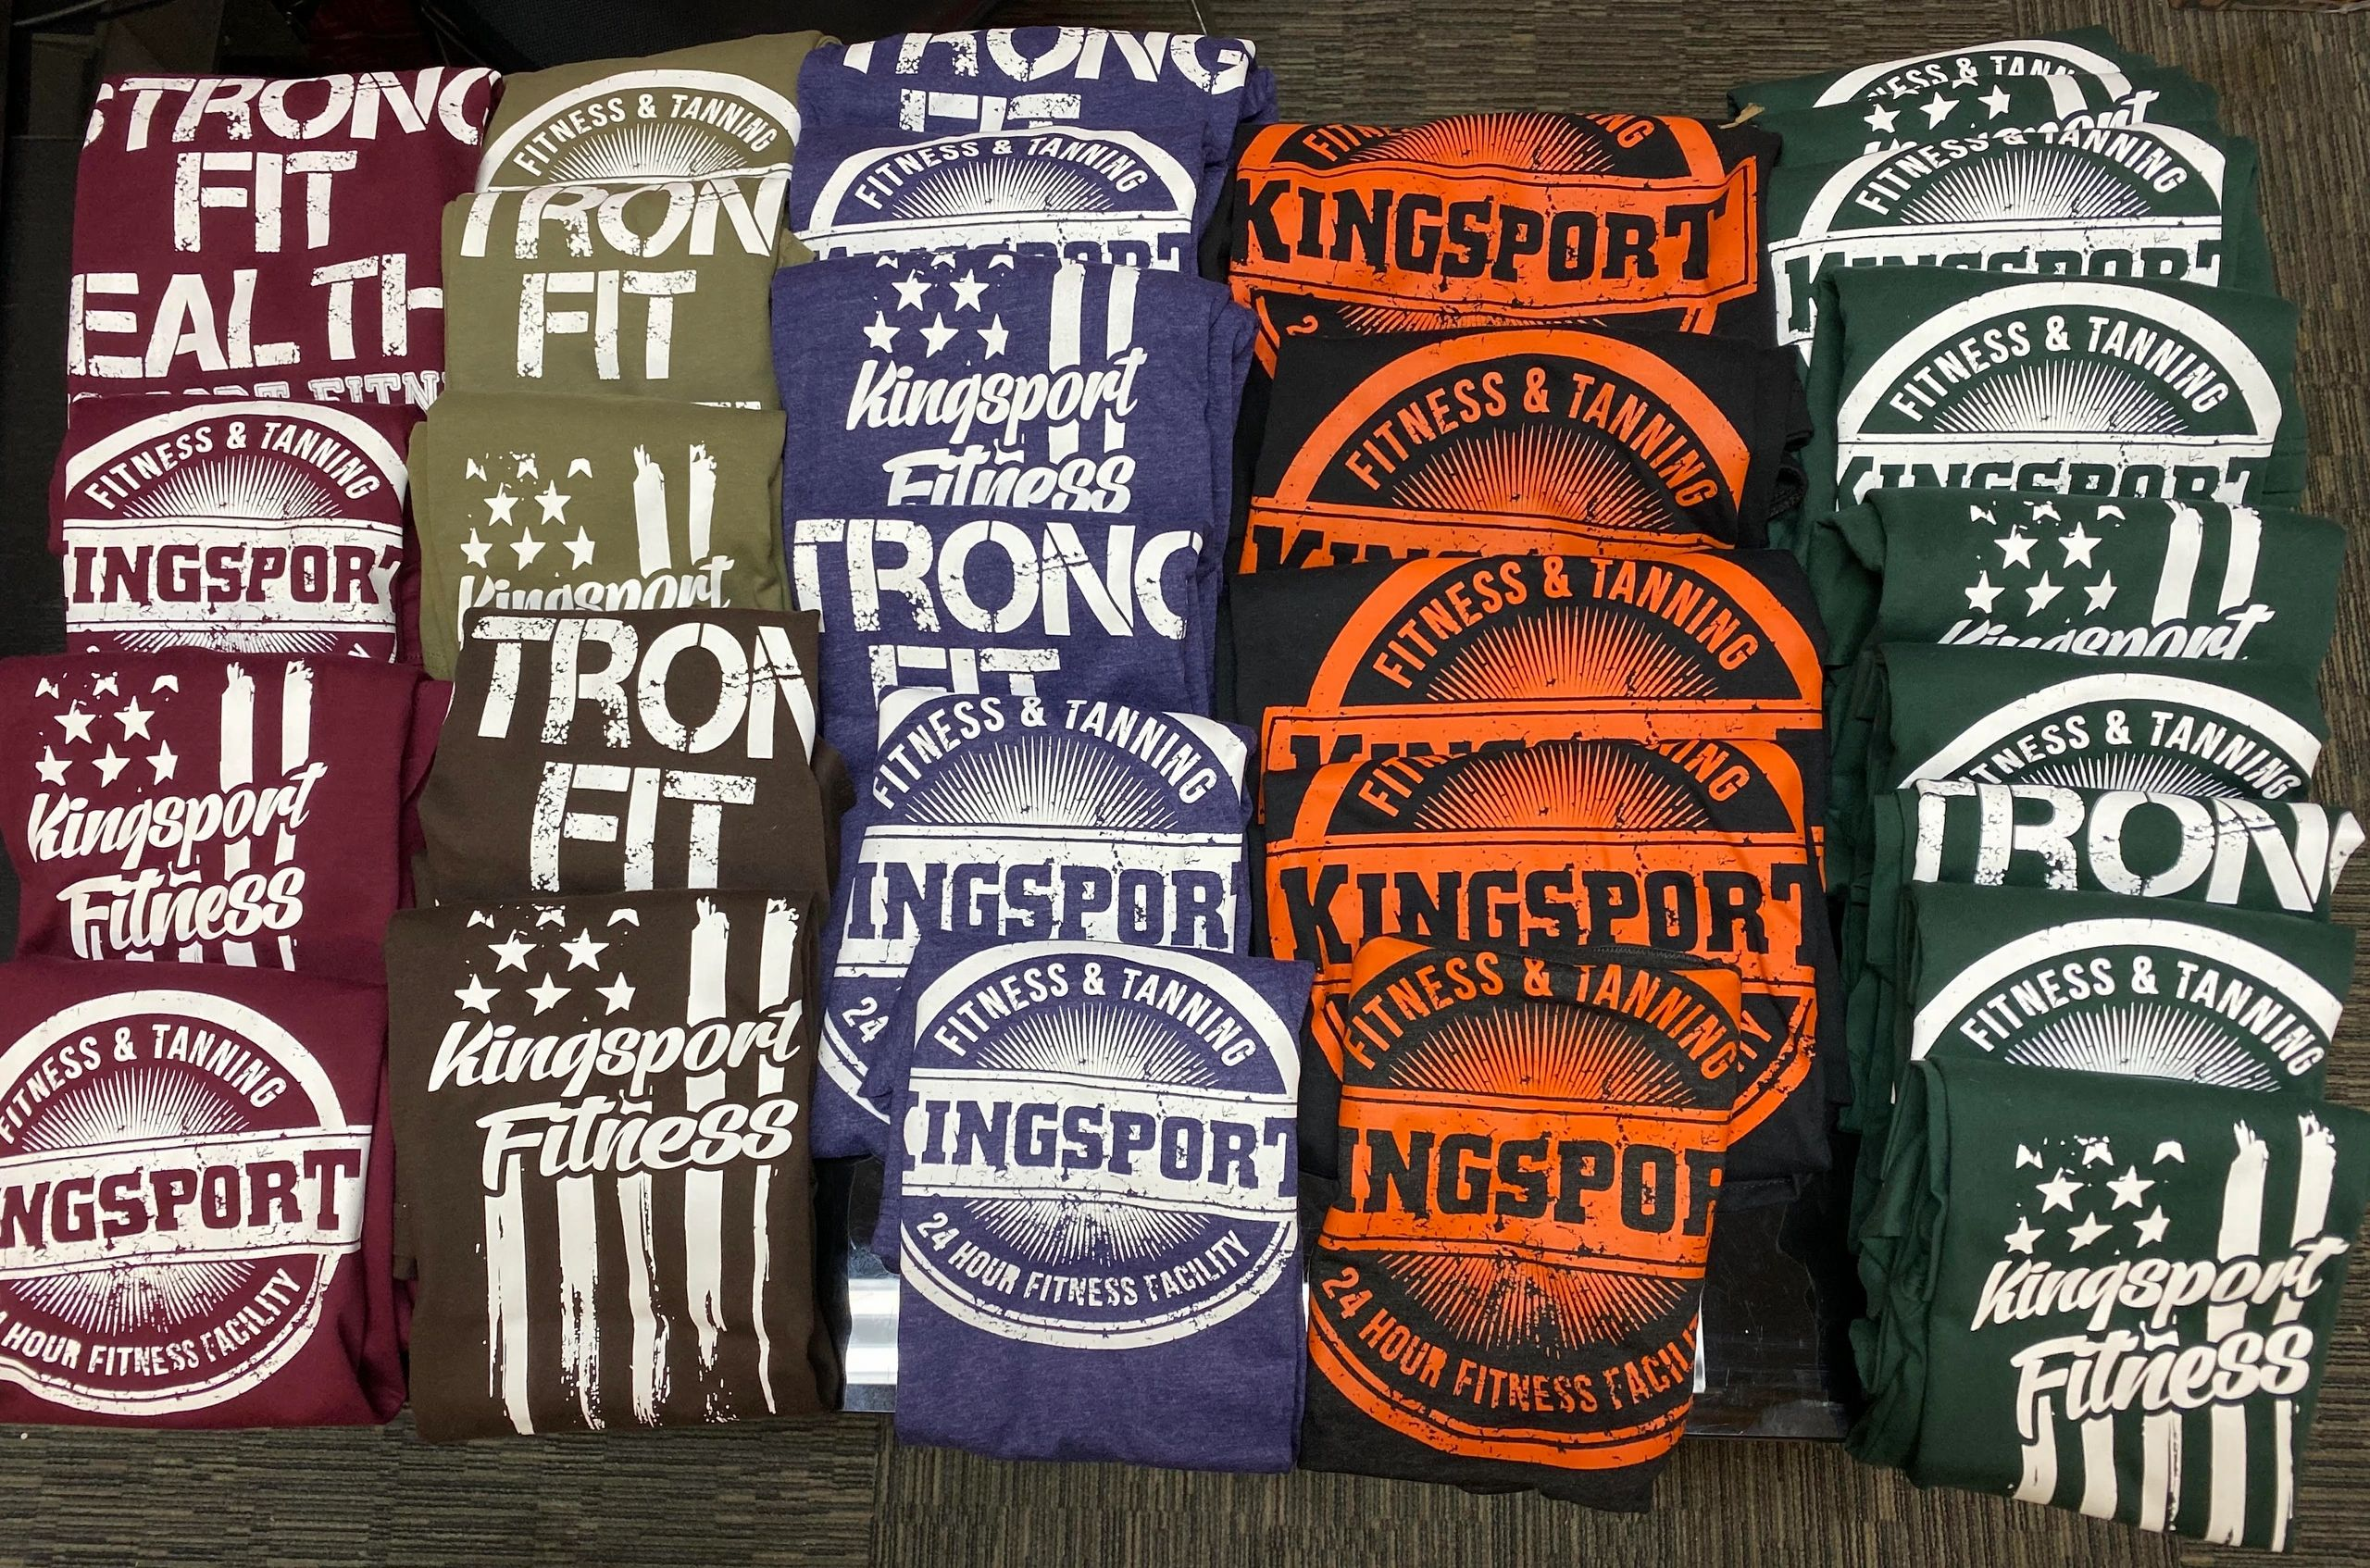 rows of Kingsport Fitness & Tanning t-shirts with various colors and designs